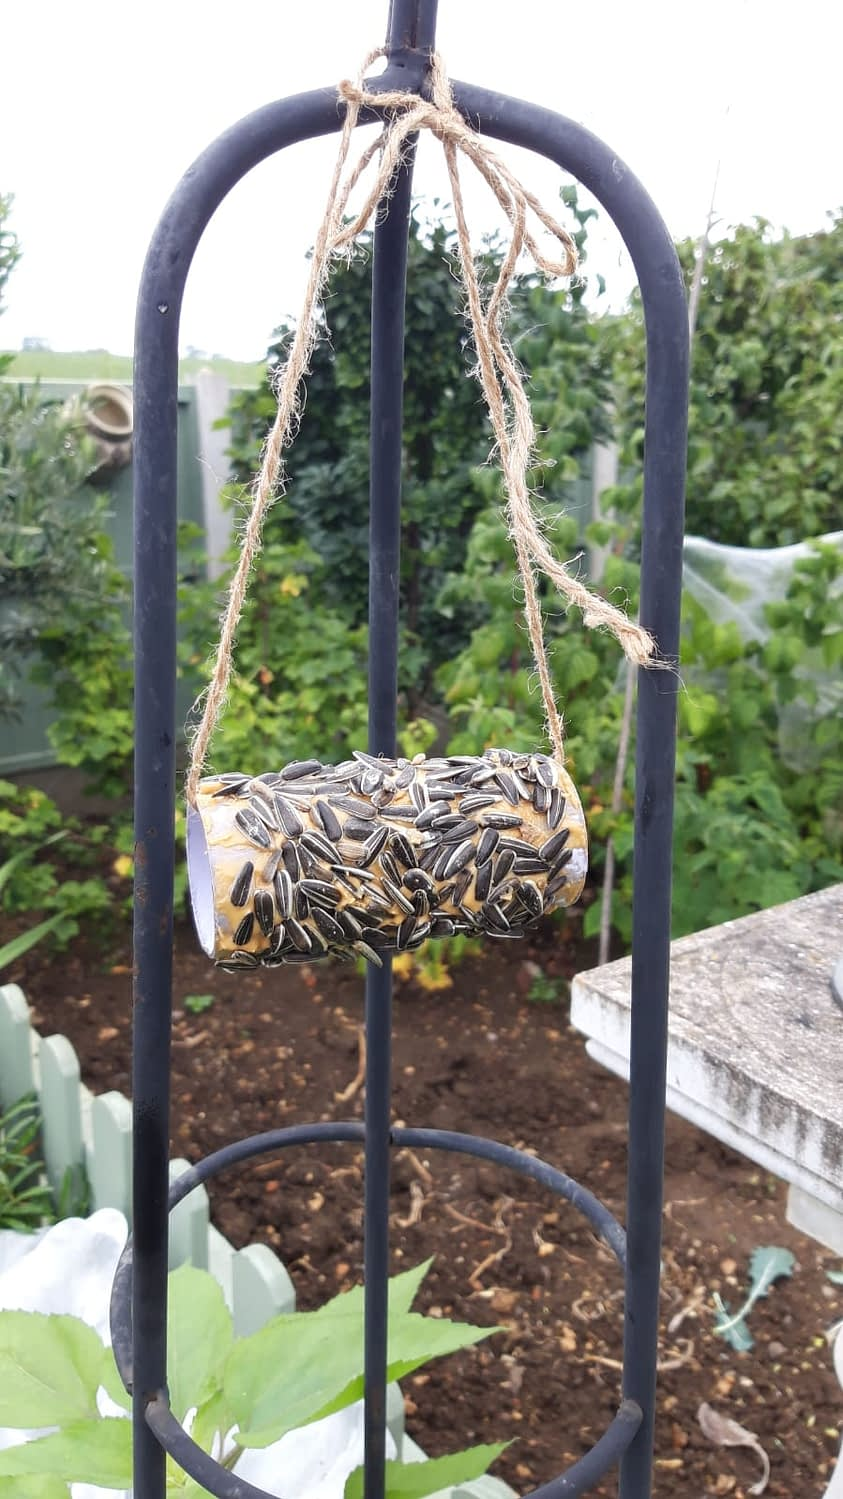 Bird feeder made from common house hold objects